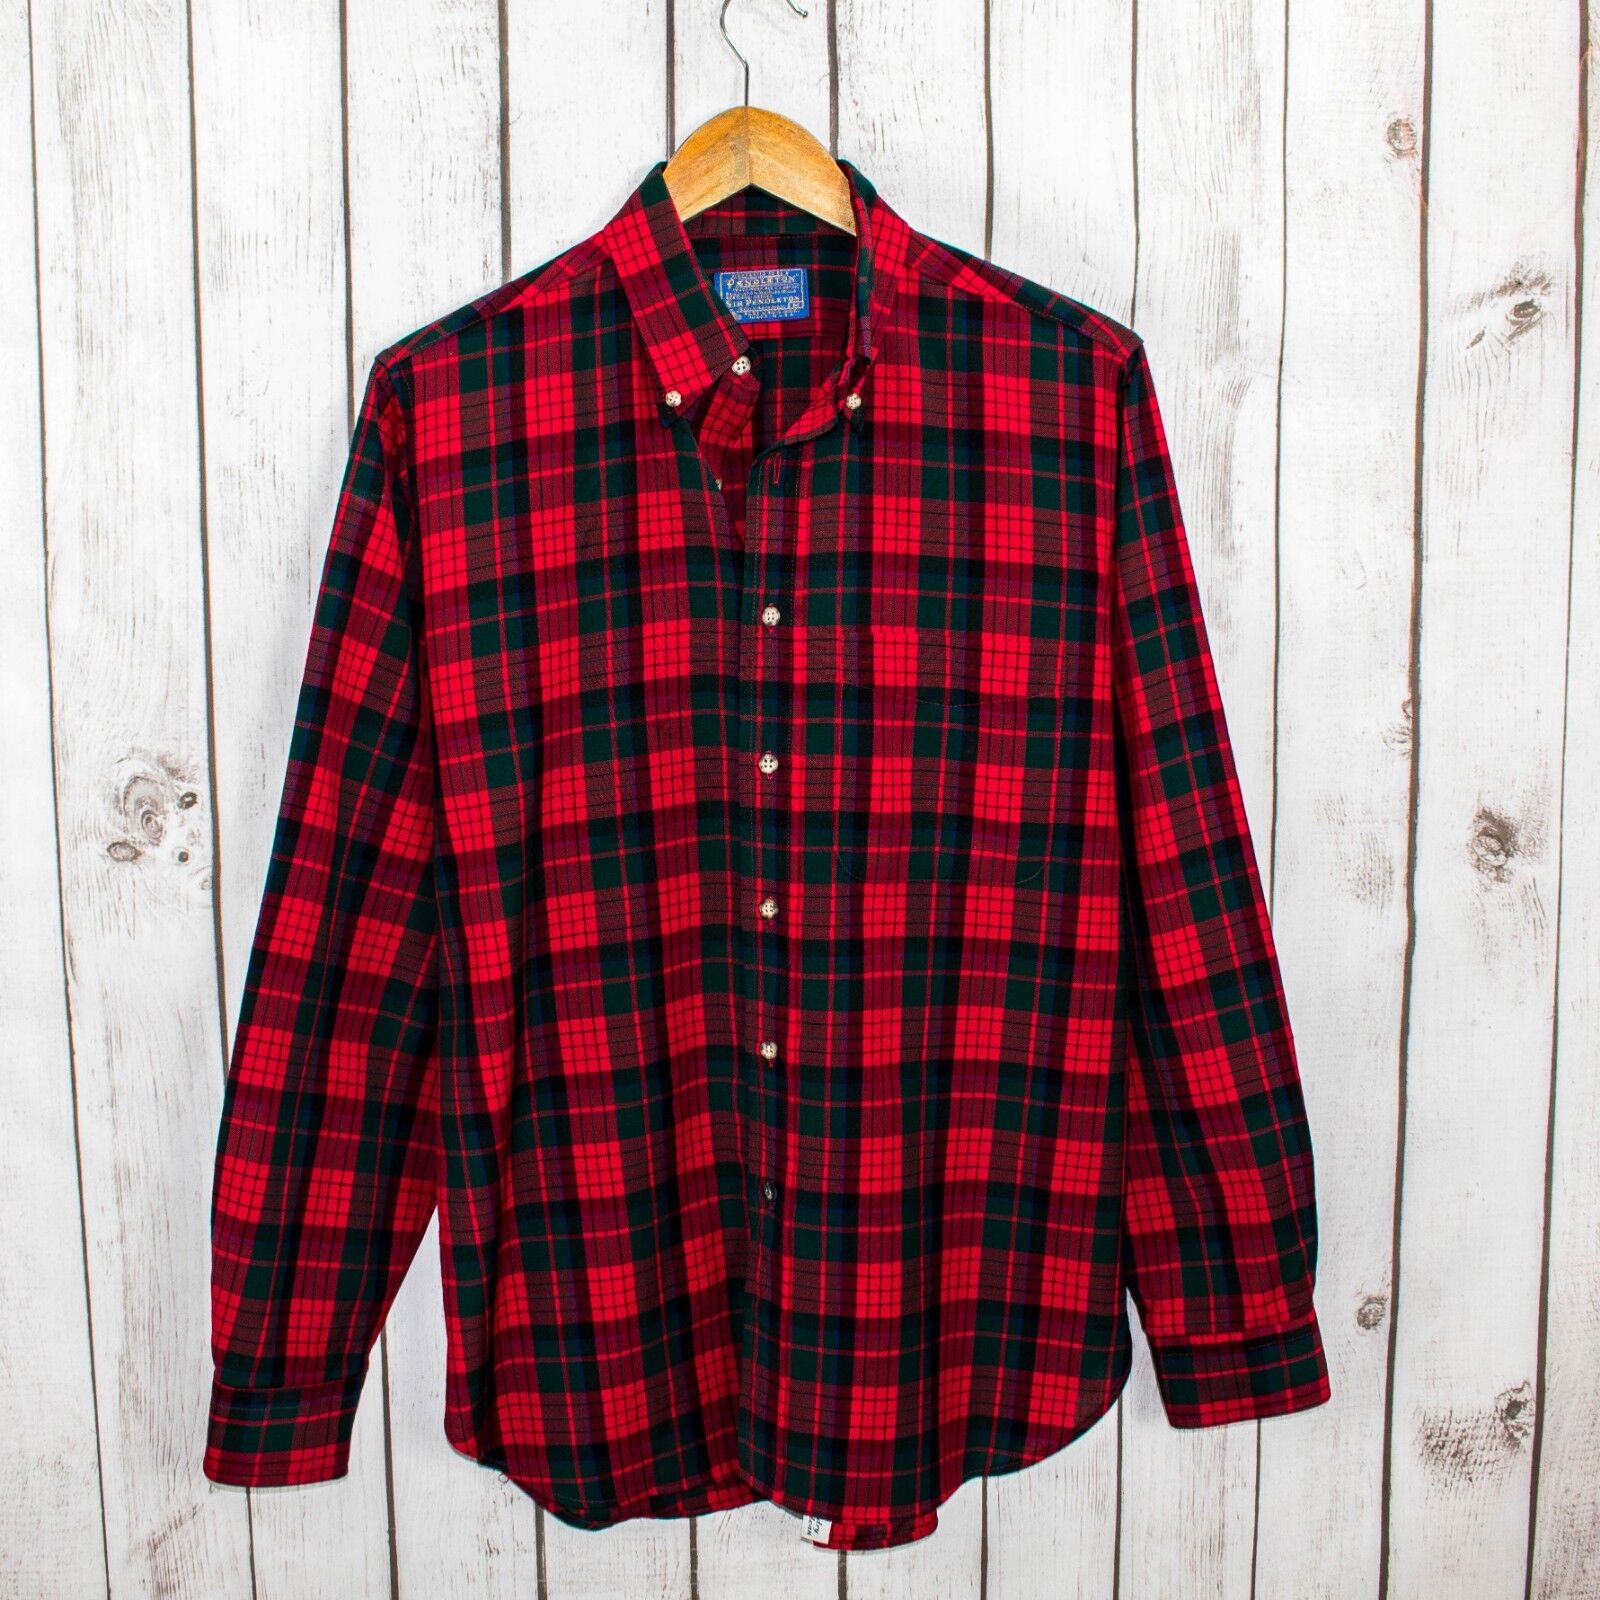 PENDLETON Men's Virgin Wool Outdoor Button Front Shirt Red Green Plaid Sz M USA